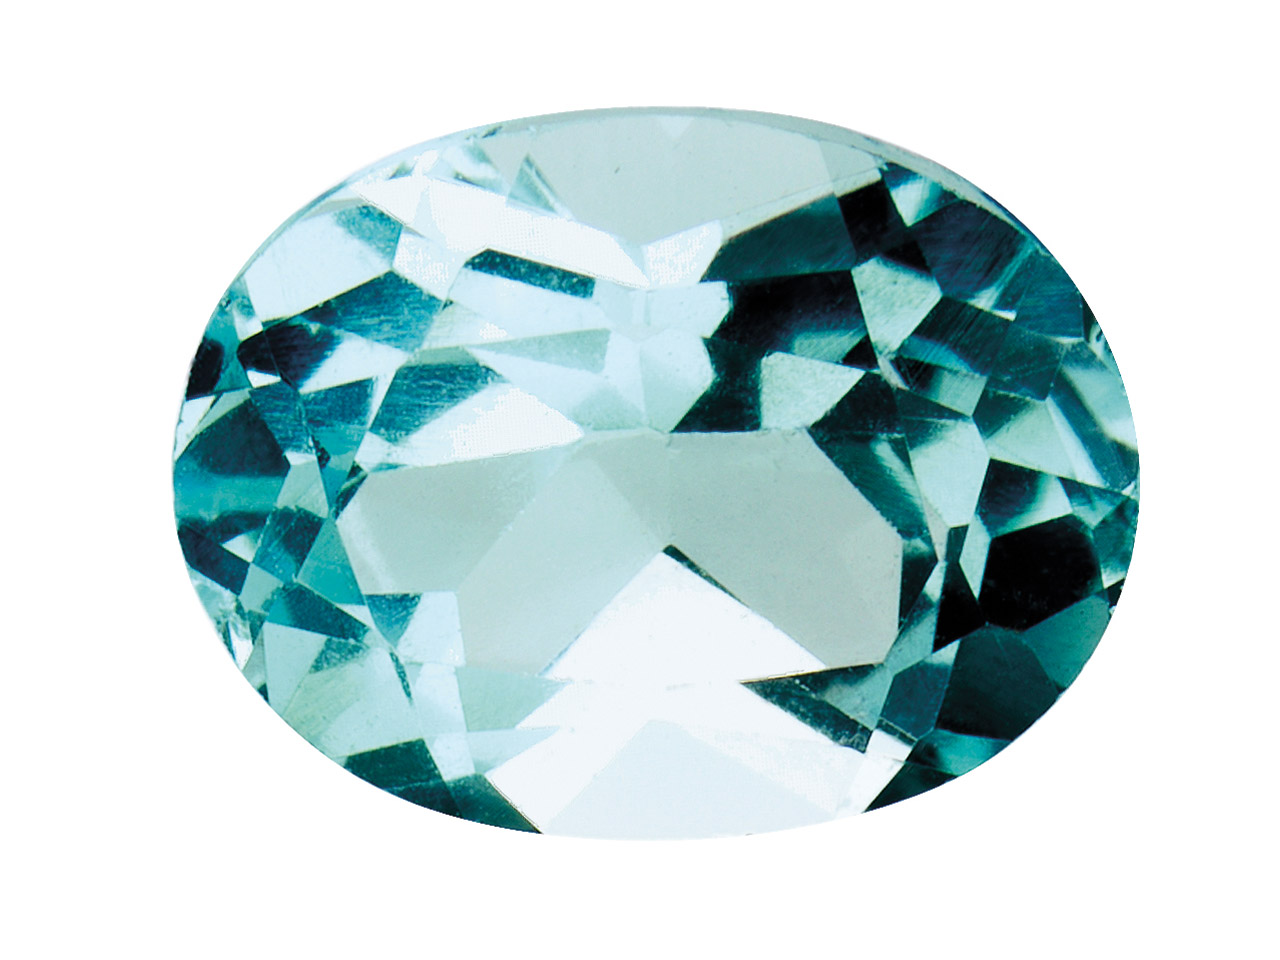 Sky Blue Topaz, Oval, 10x8mm,      Treated